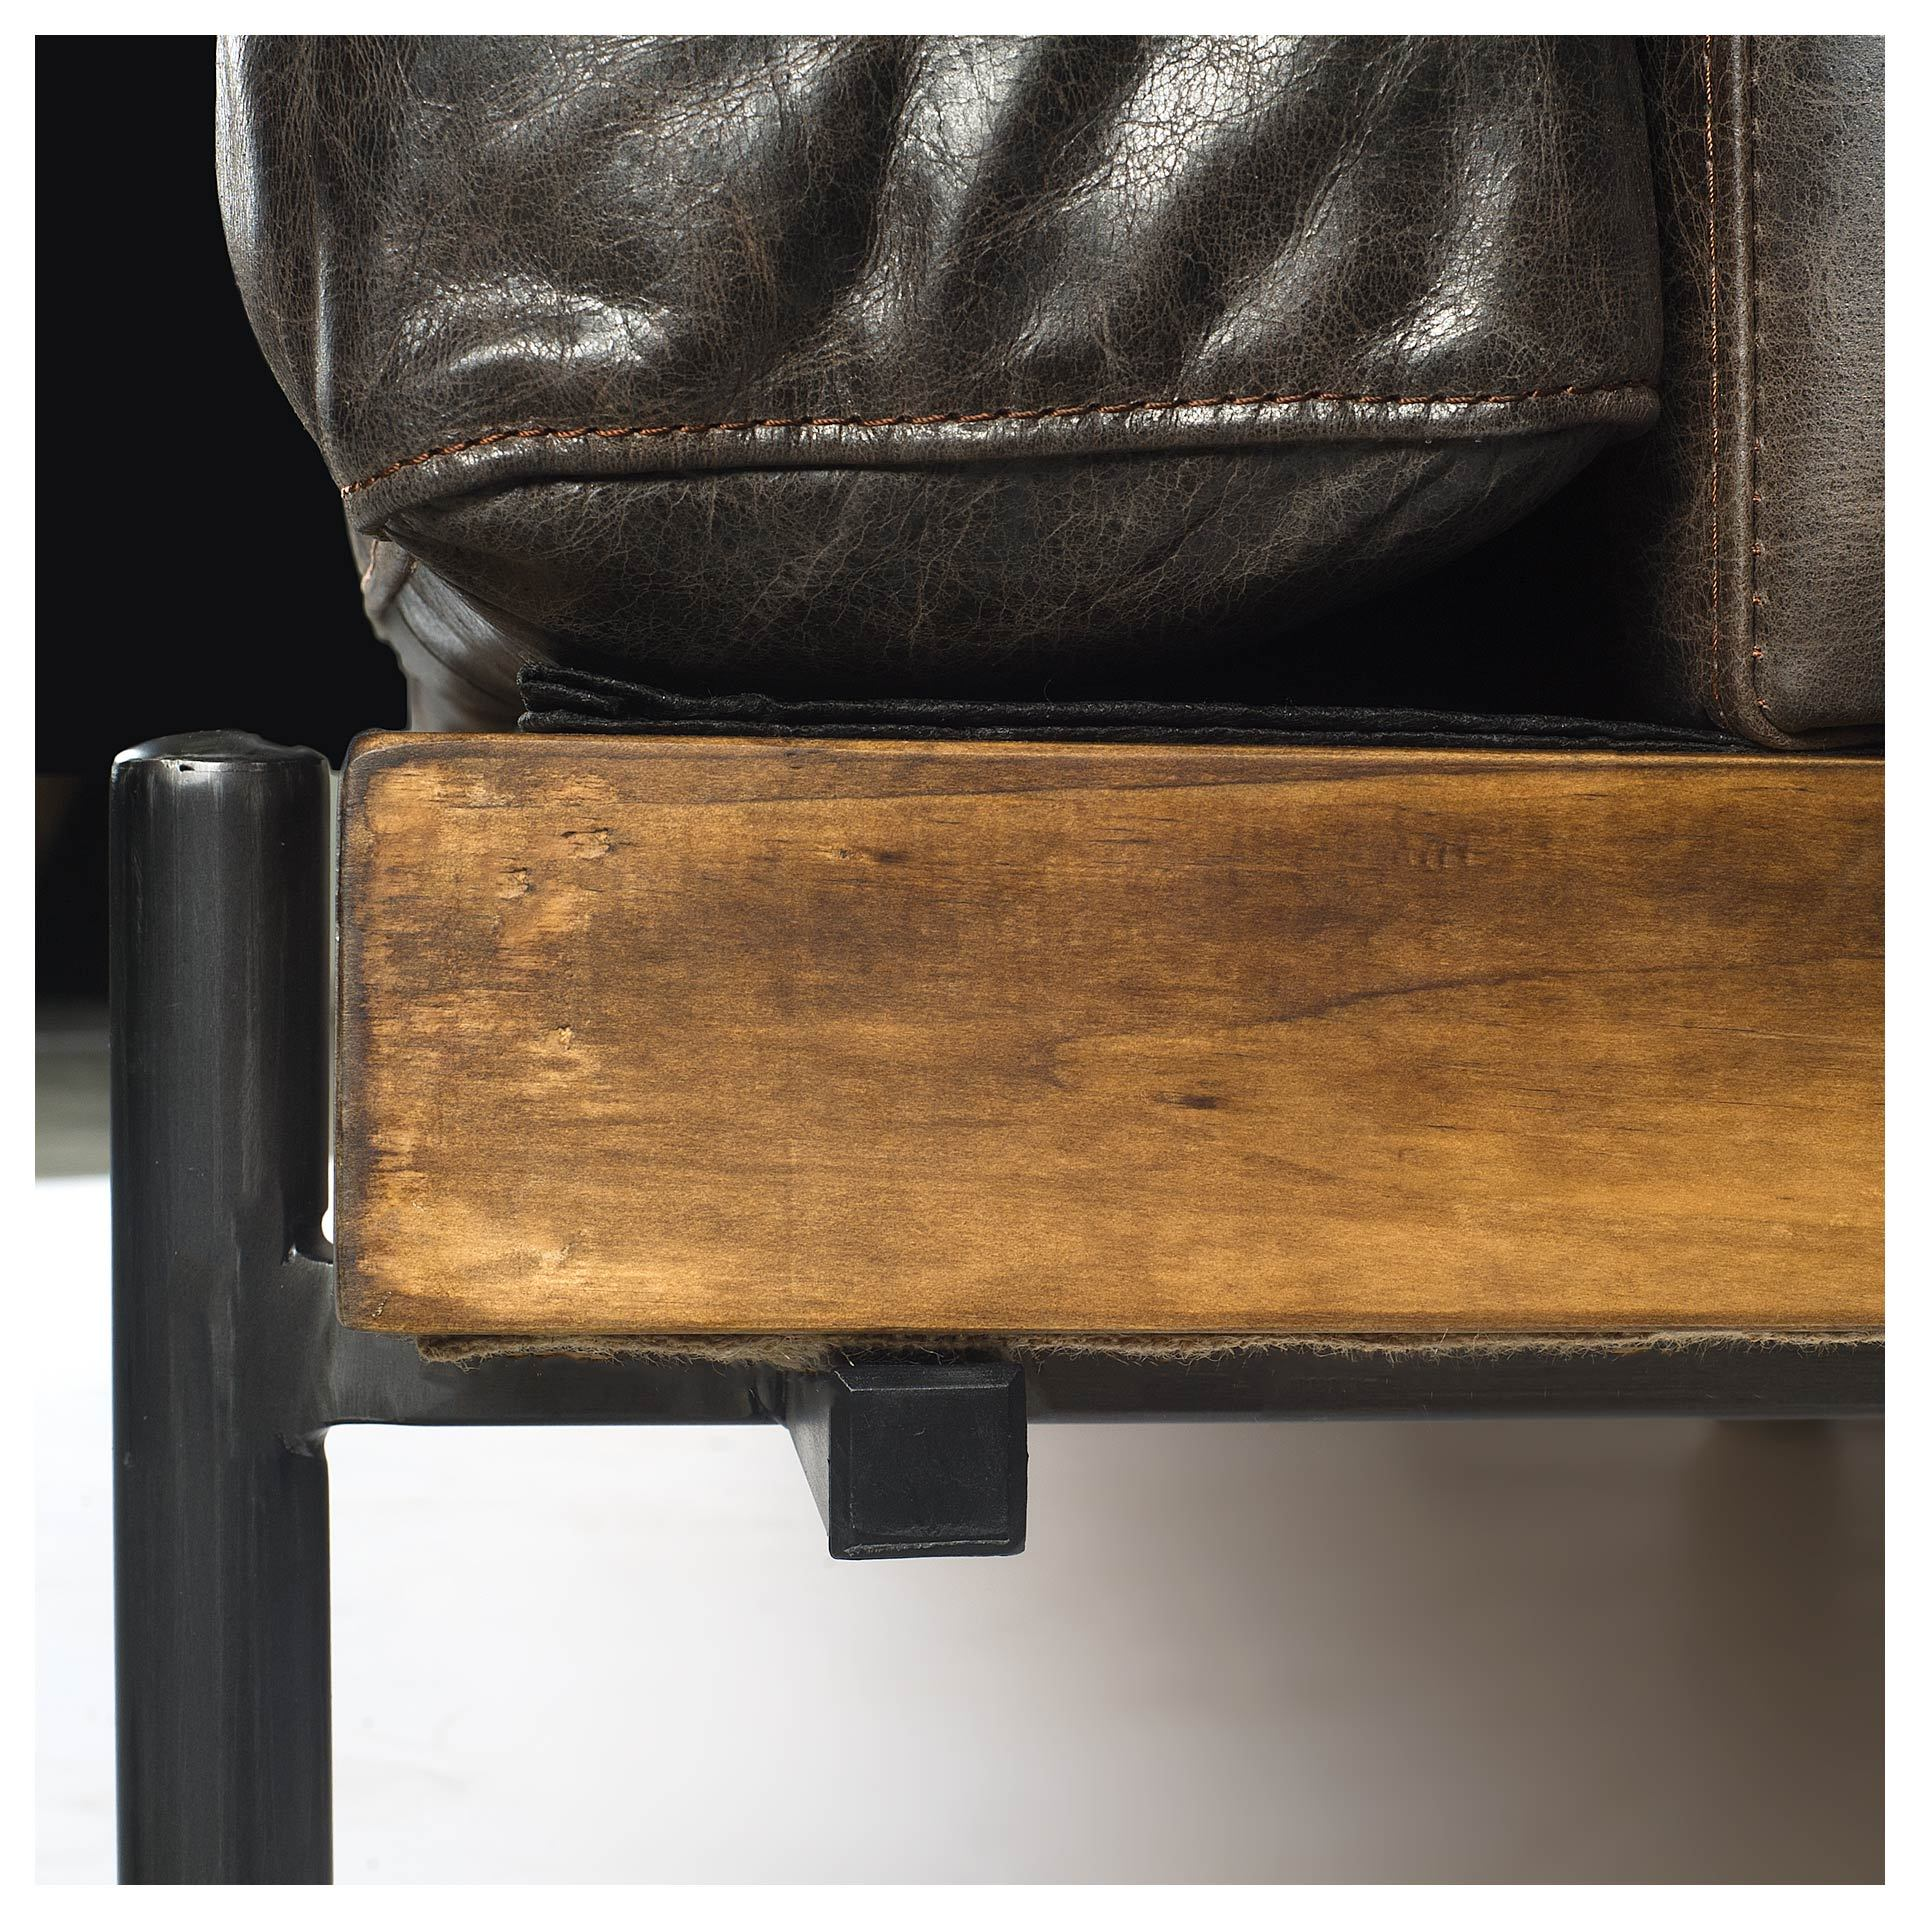 Phenomenal Retro Mid Century Modern Brown Leather Sofa Couch Iron Pdpeps Interior Chair Design Pdpepsorg